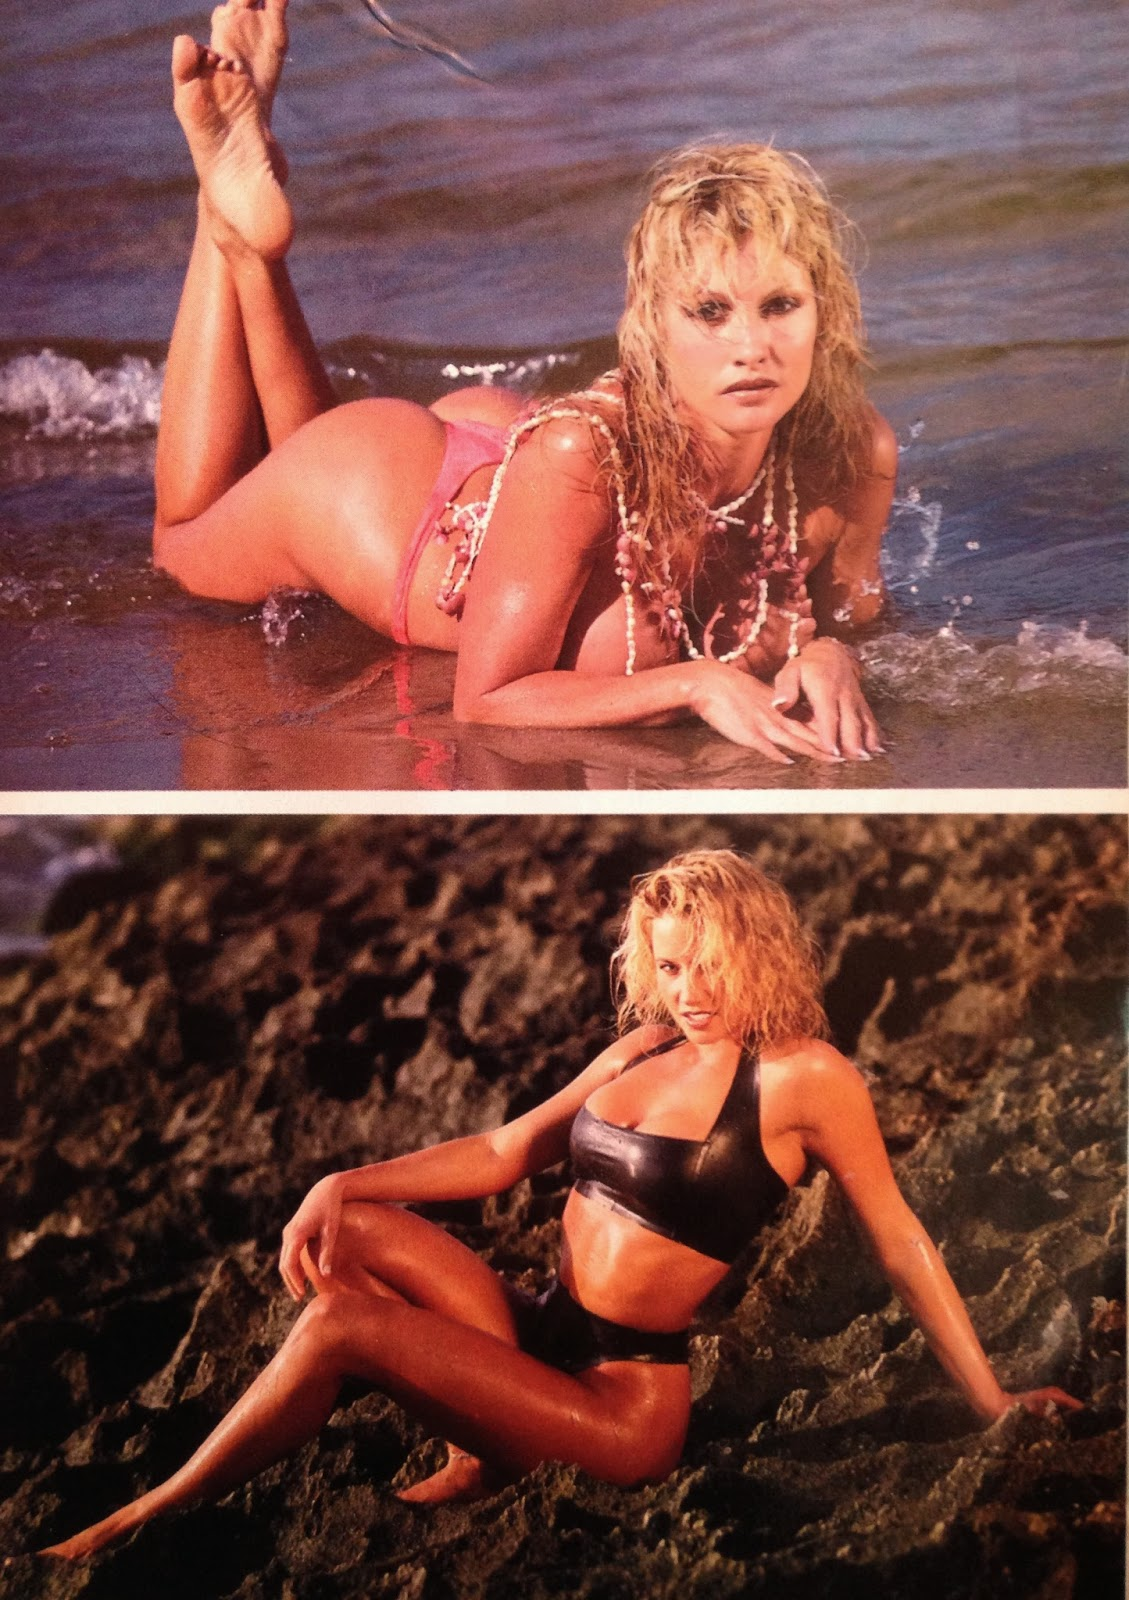 WWE: WWF RAW MAGAZINE - January 1998 - Sunny and Sable photoshoot